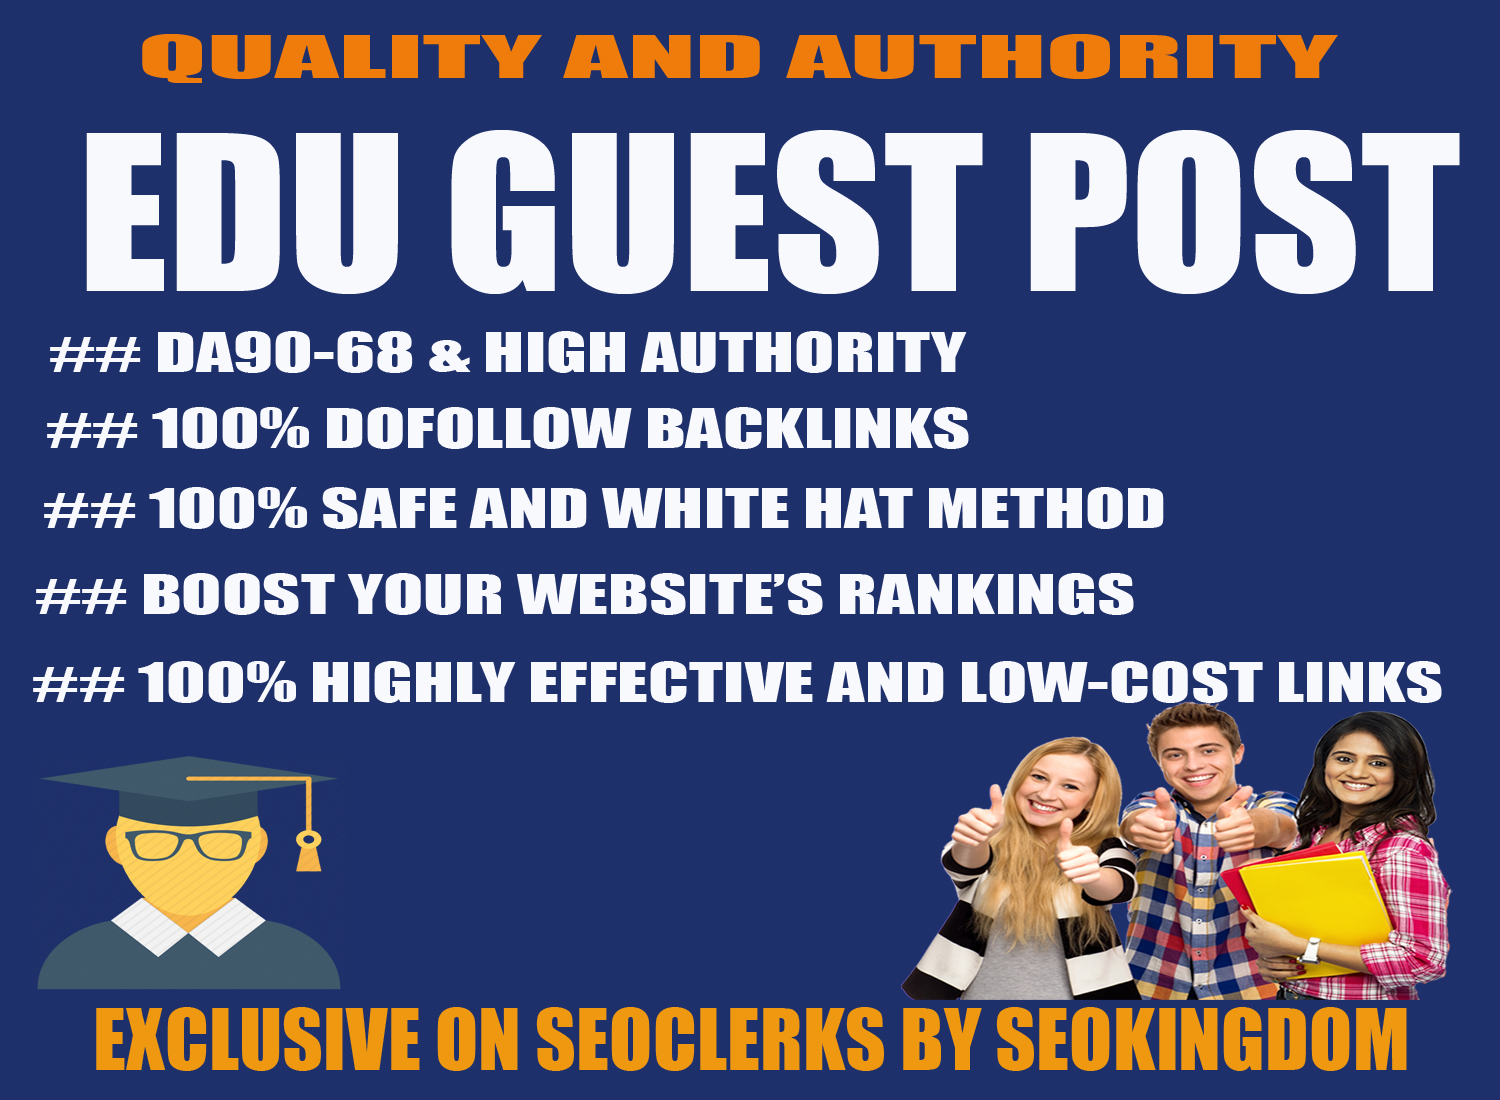 Publish 5 Articles on High Authority Edu Guest post with dofollow seo backlinks